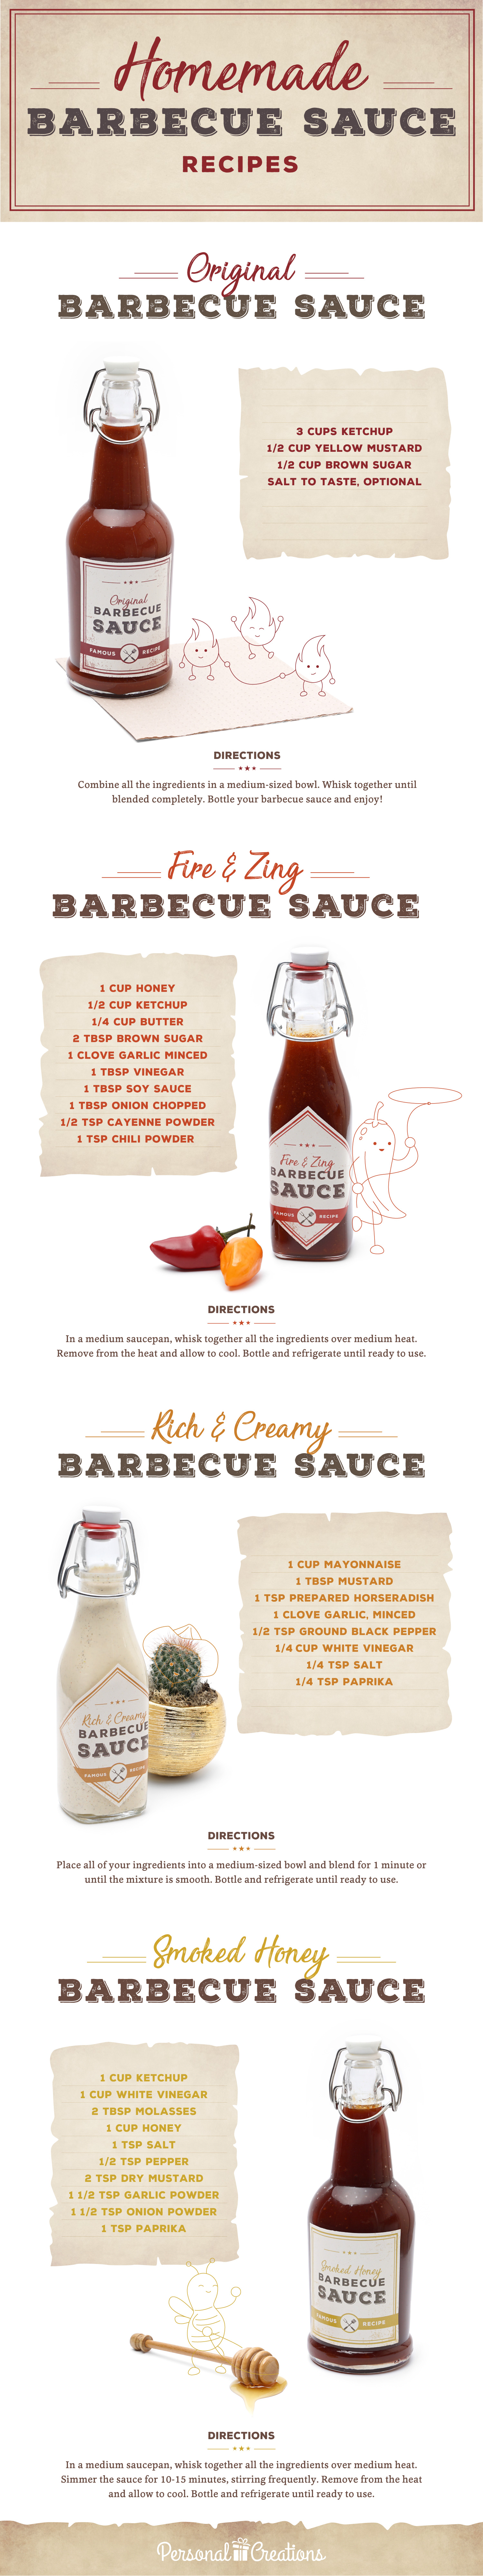 homemade bbq sauce recipes that you can make at home